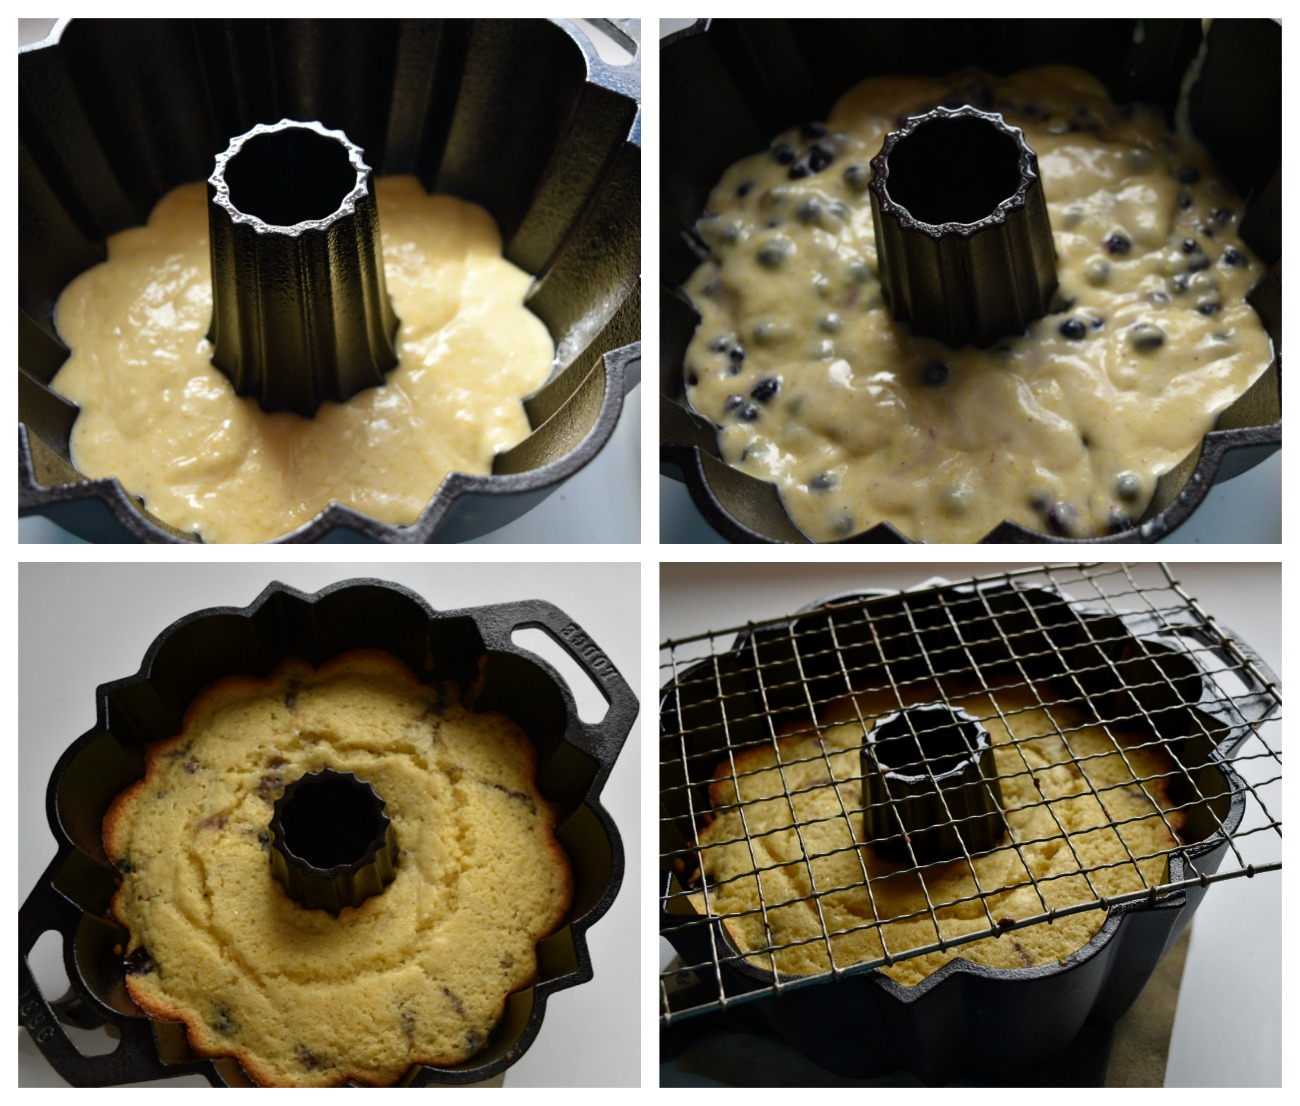 The berries are going to want to sink, so putting them in the upper 2/3 of the batter will land them about in the center once the cake is baked.